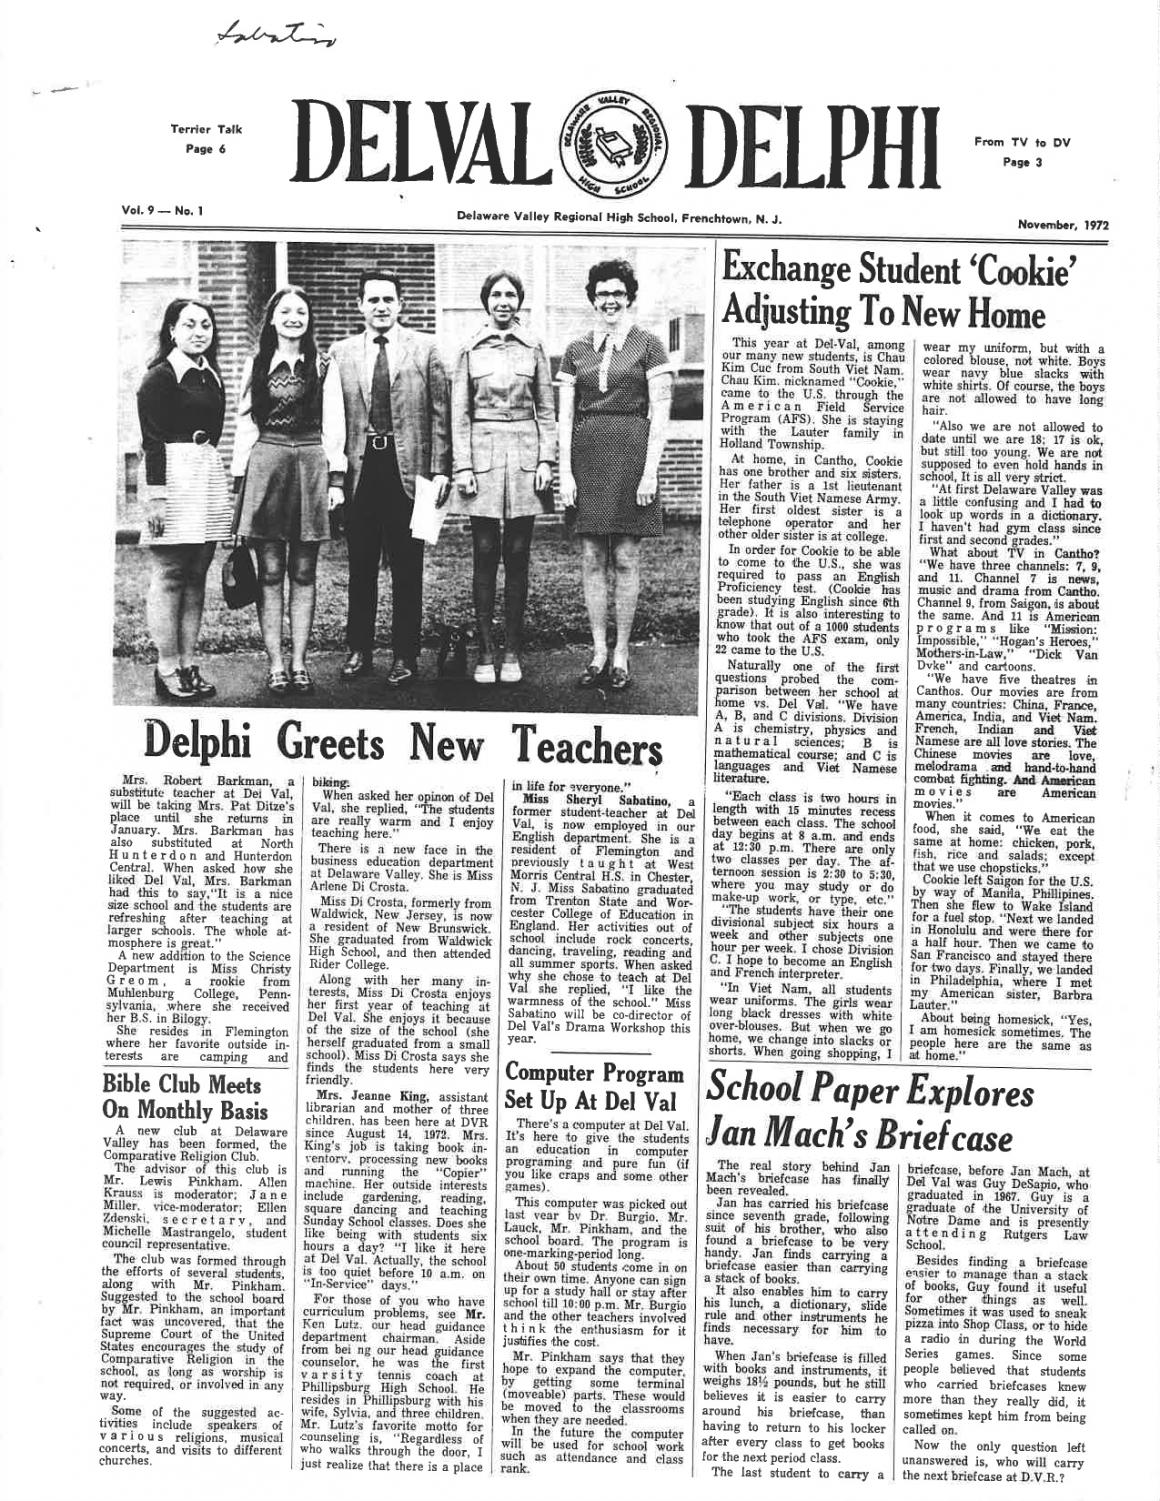 The cover of the November 1972 issue of The Delphi